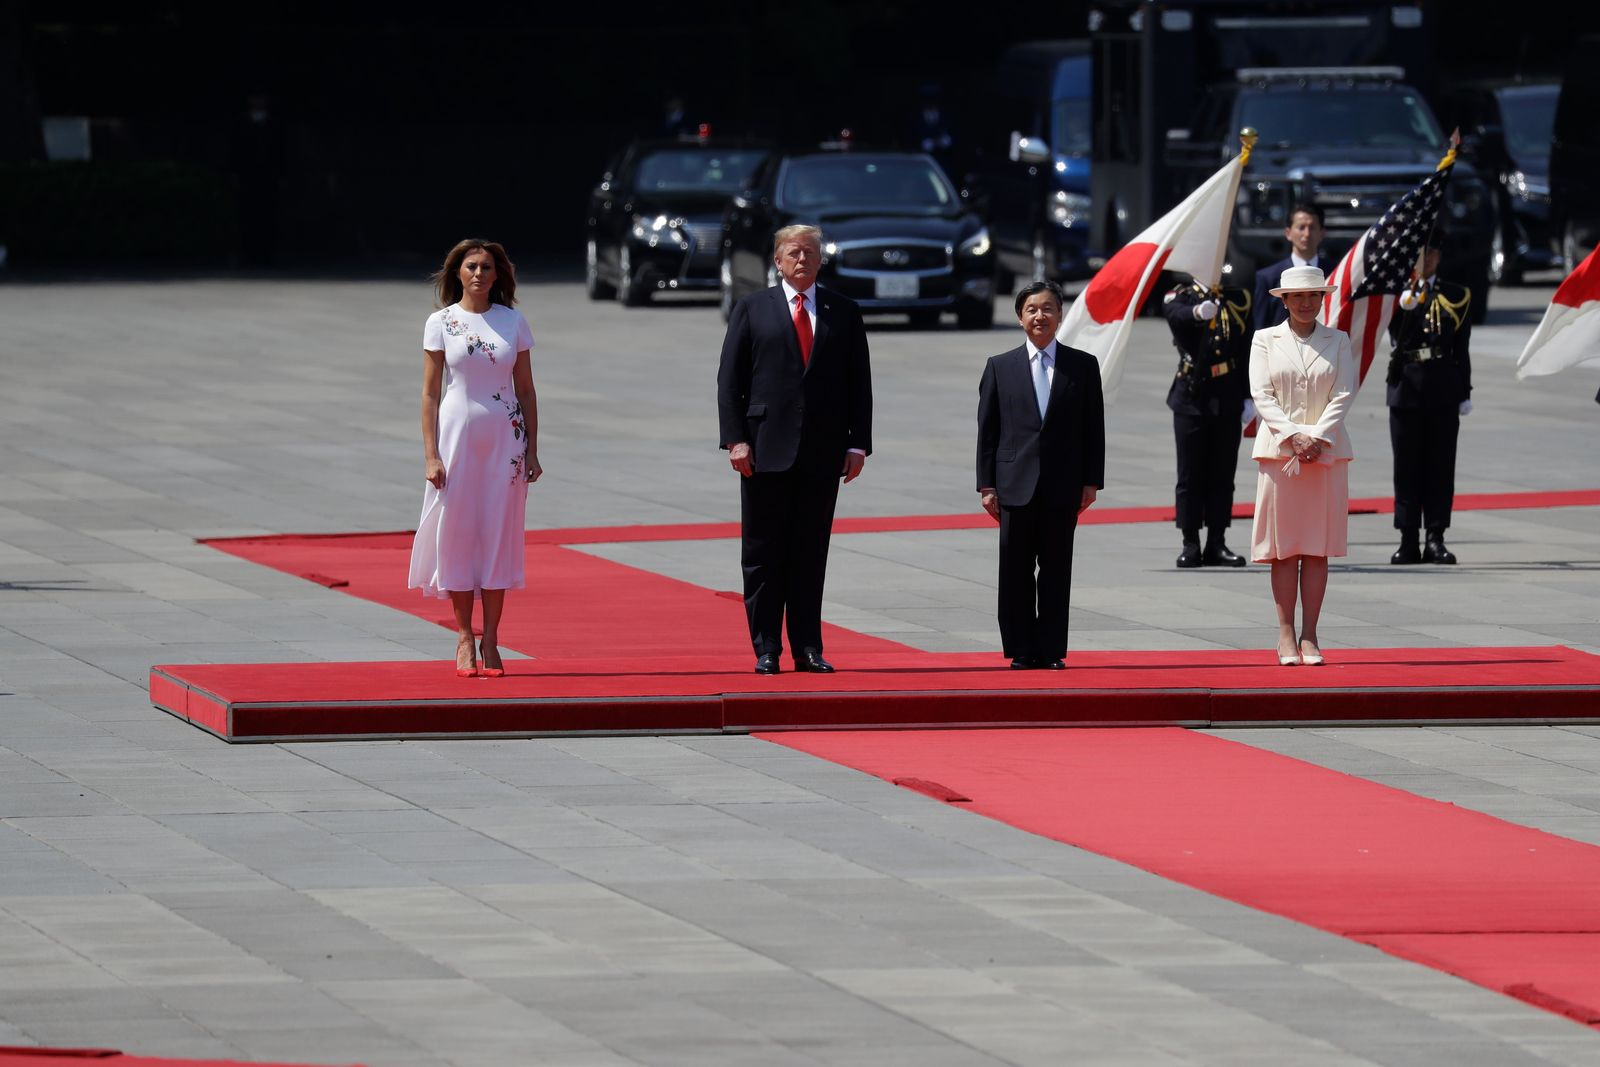 President Donald Trump and first lady Melania Trump participate with Japanese Emperor Naruhito and Empress Masako during an Imperial Palace welcome ceremony at the Imperial Palace, Monday, May 27, 2019, in Tokyo. (AP Photo/Evan Vucci)